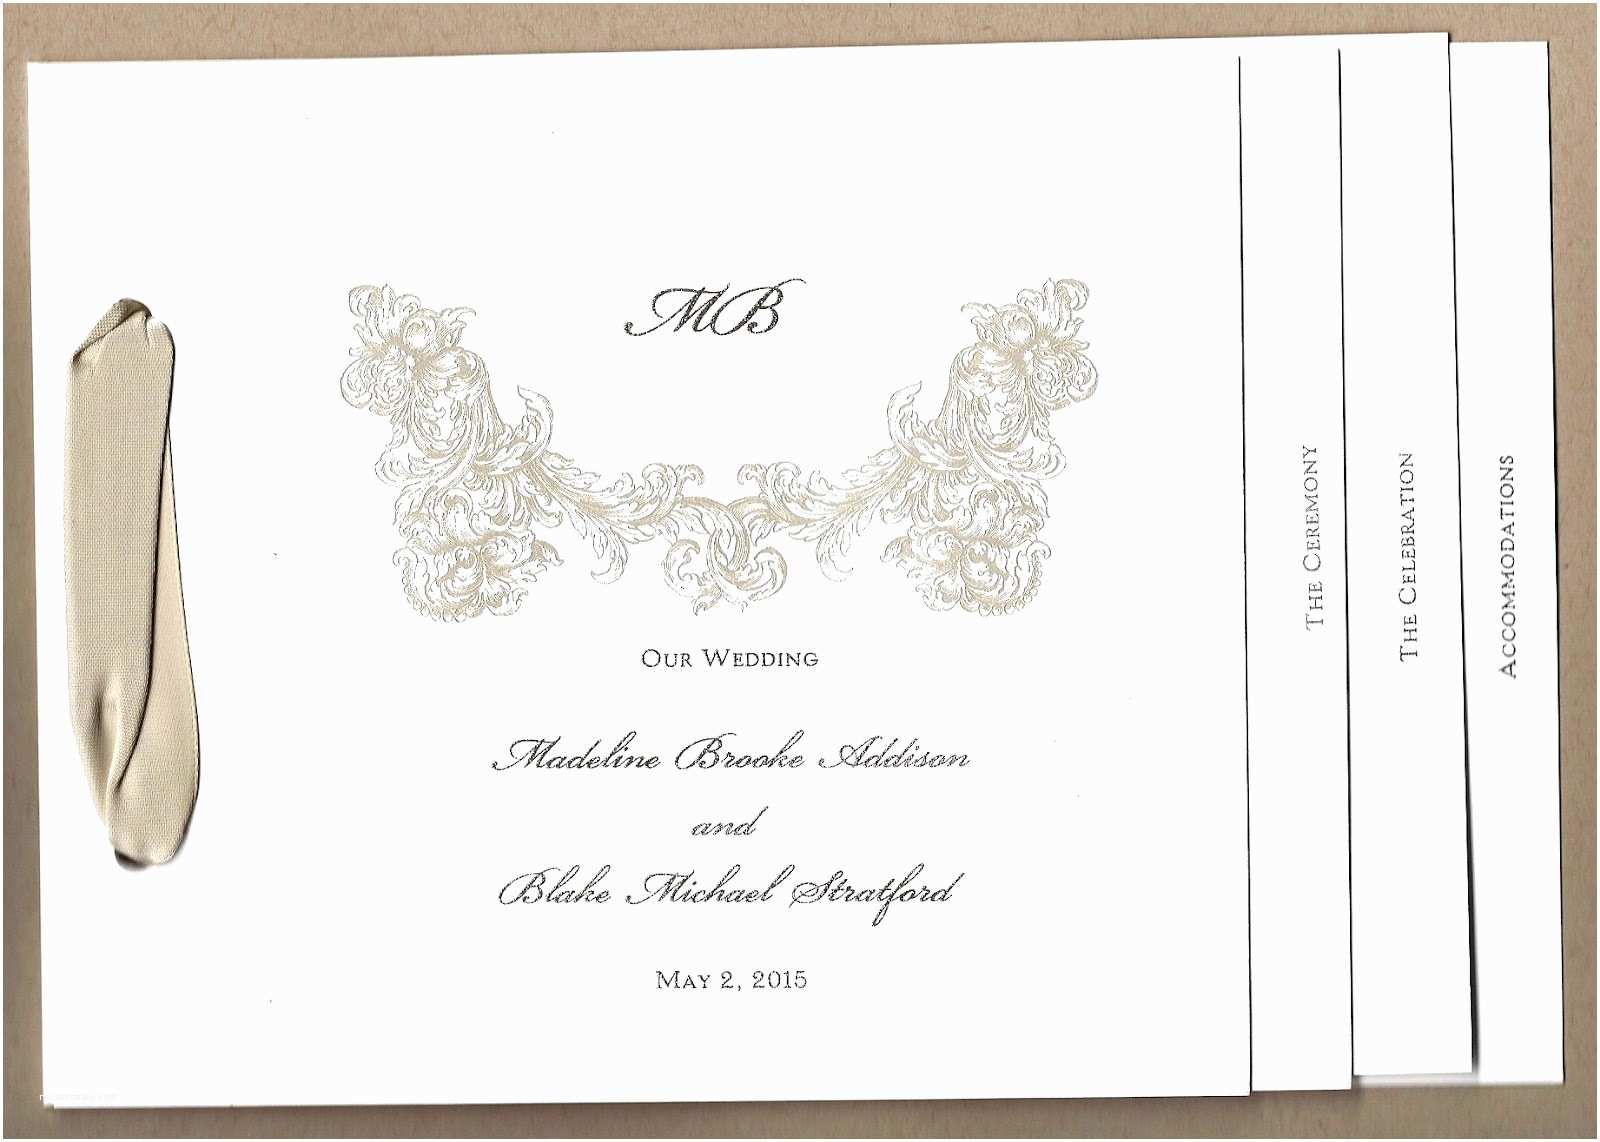 Free Wedding Invitation Maker Cards Ideas with Line Wedding Invitation Maker Hd